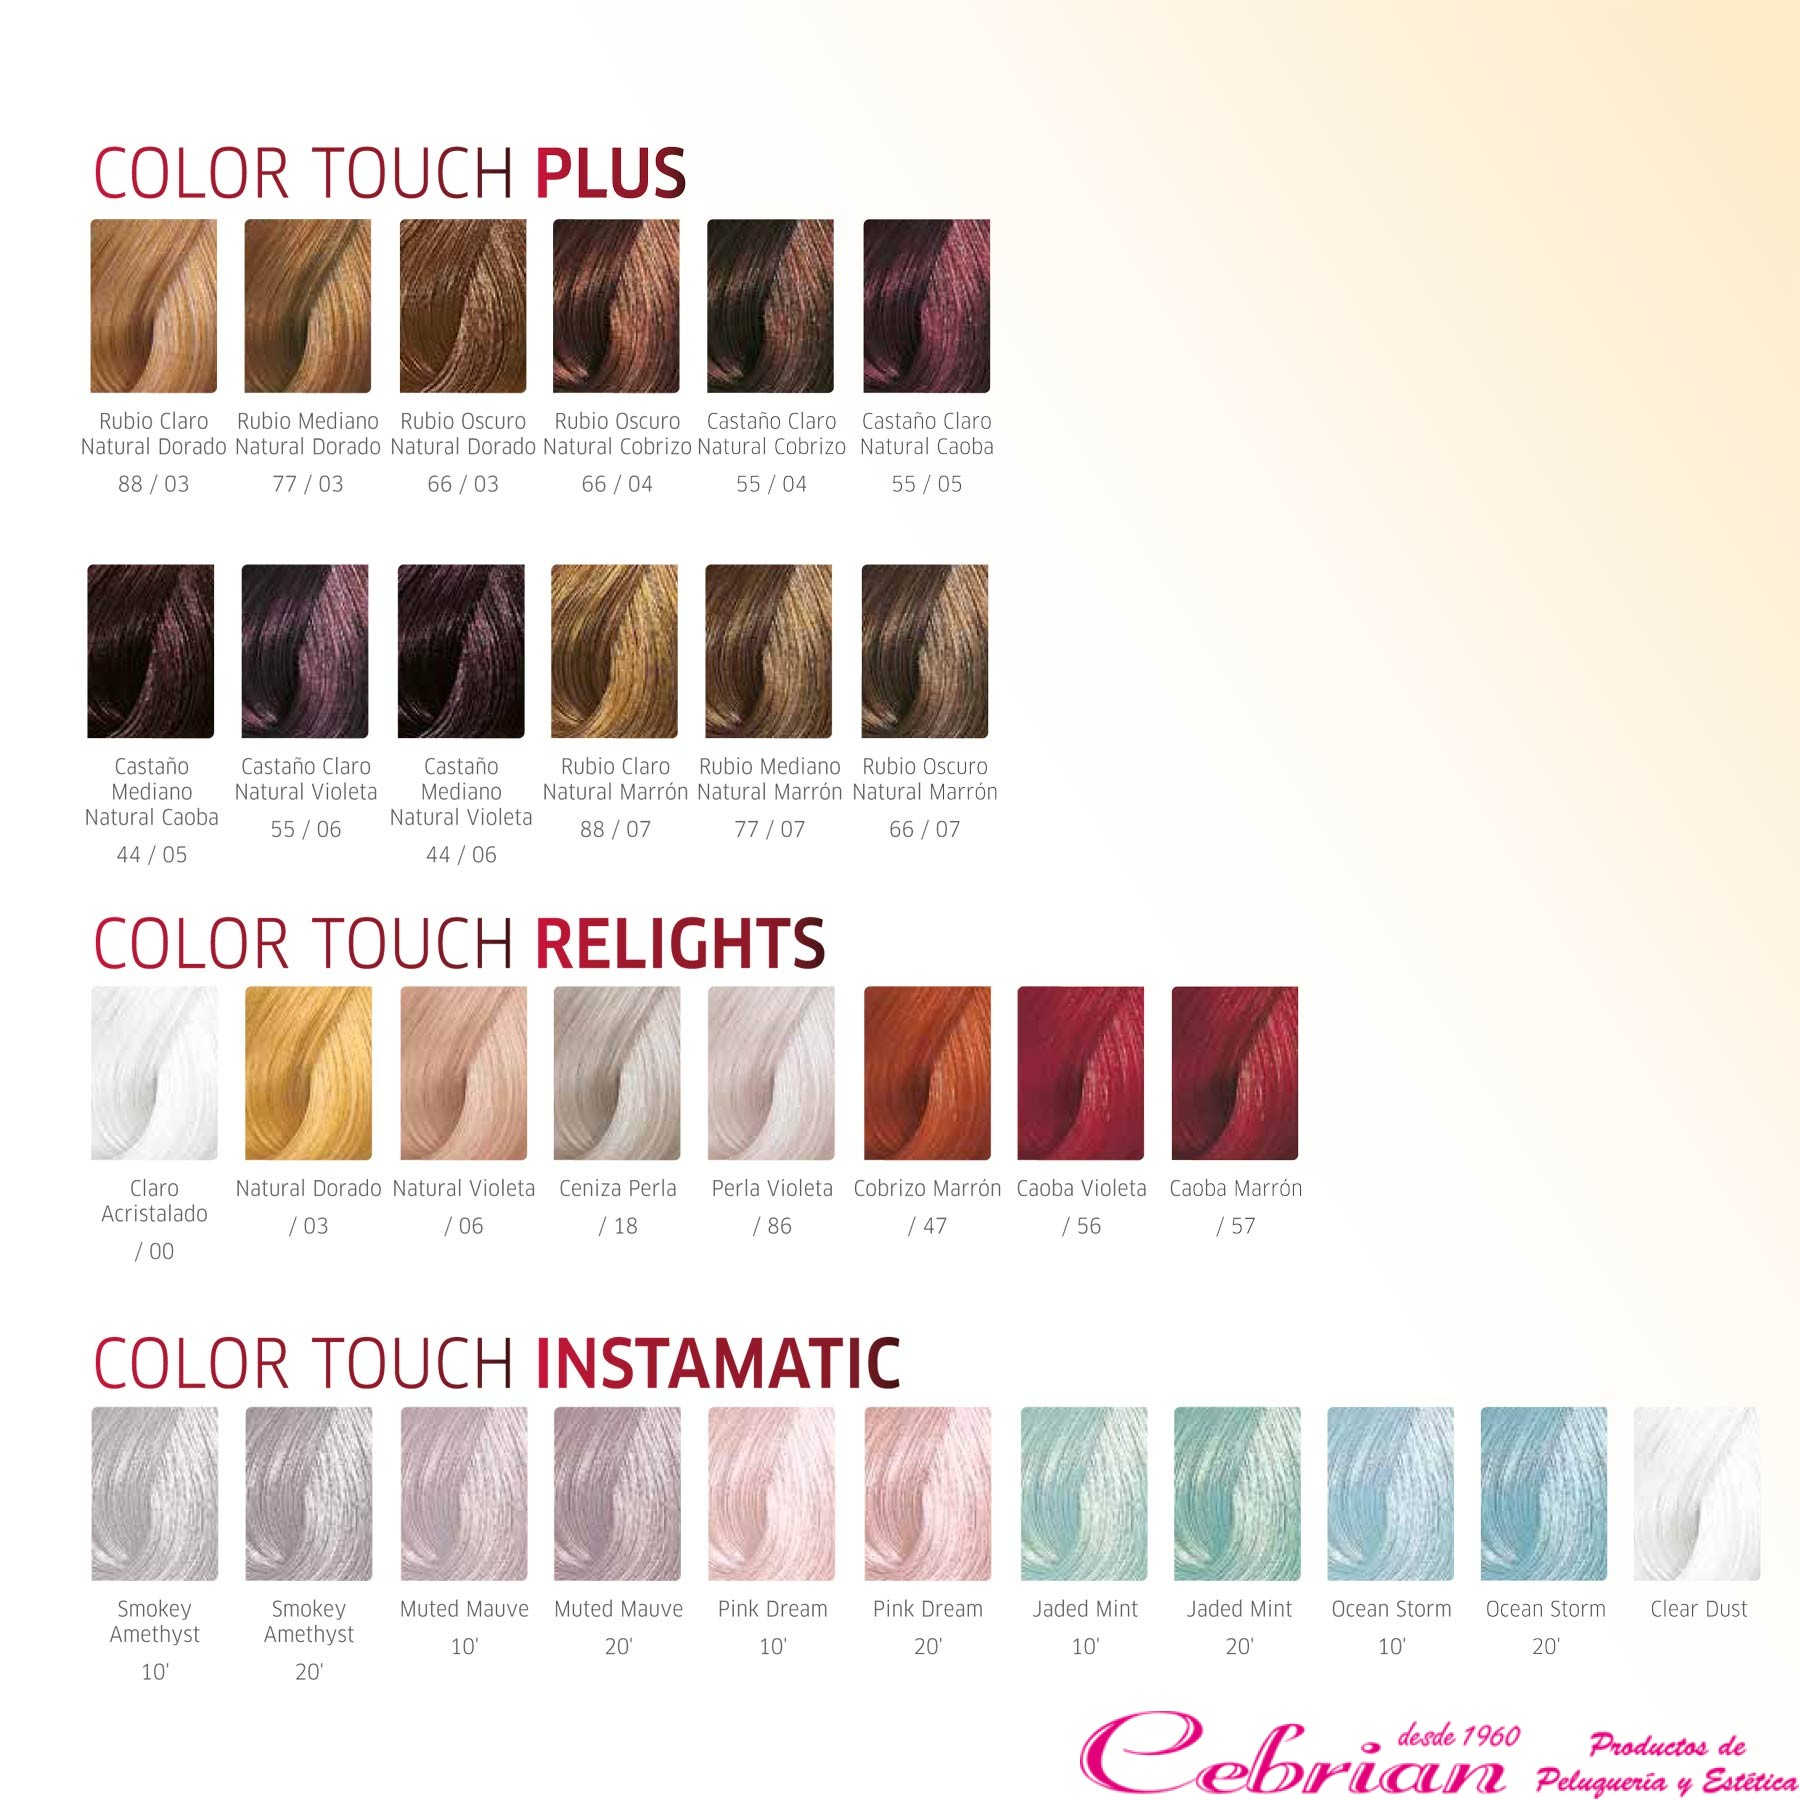 Color touch wella chart images free any chart examples color touch wella chart images free any chart examples wella color touch relights chart color touch nvjuhfo Choice Image